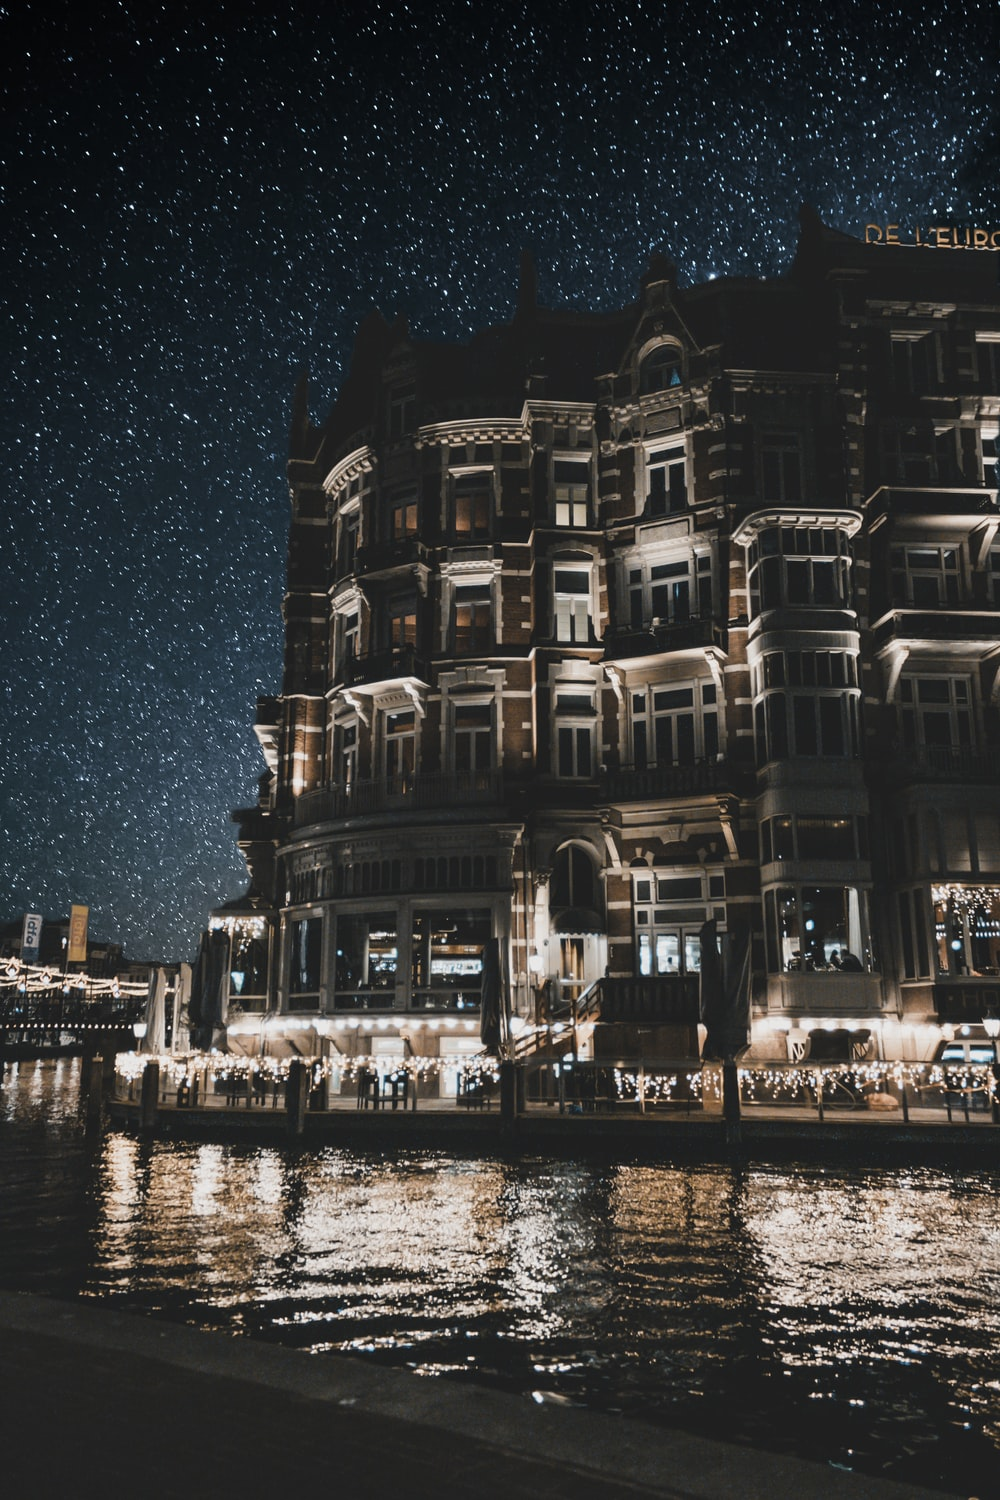 starry night sky over store building along the river